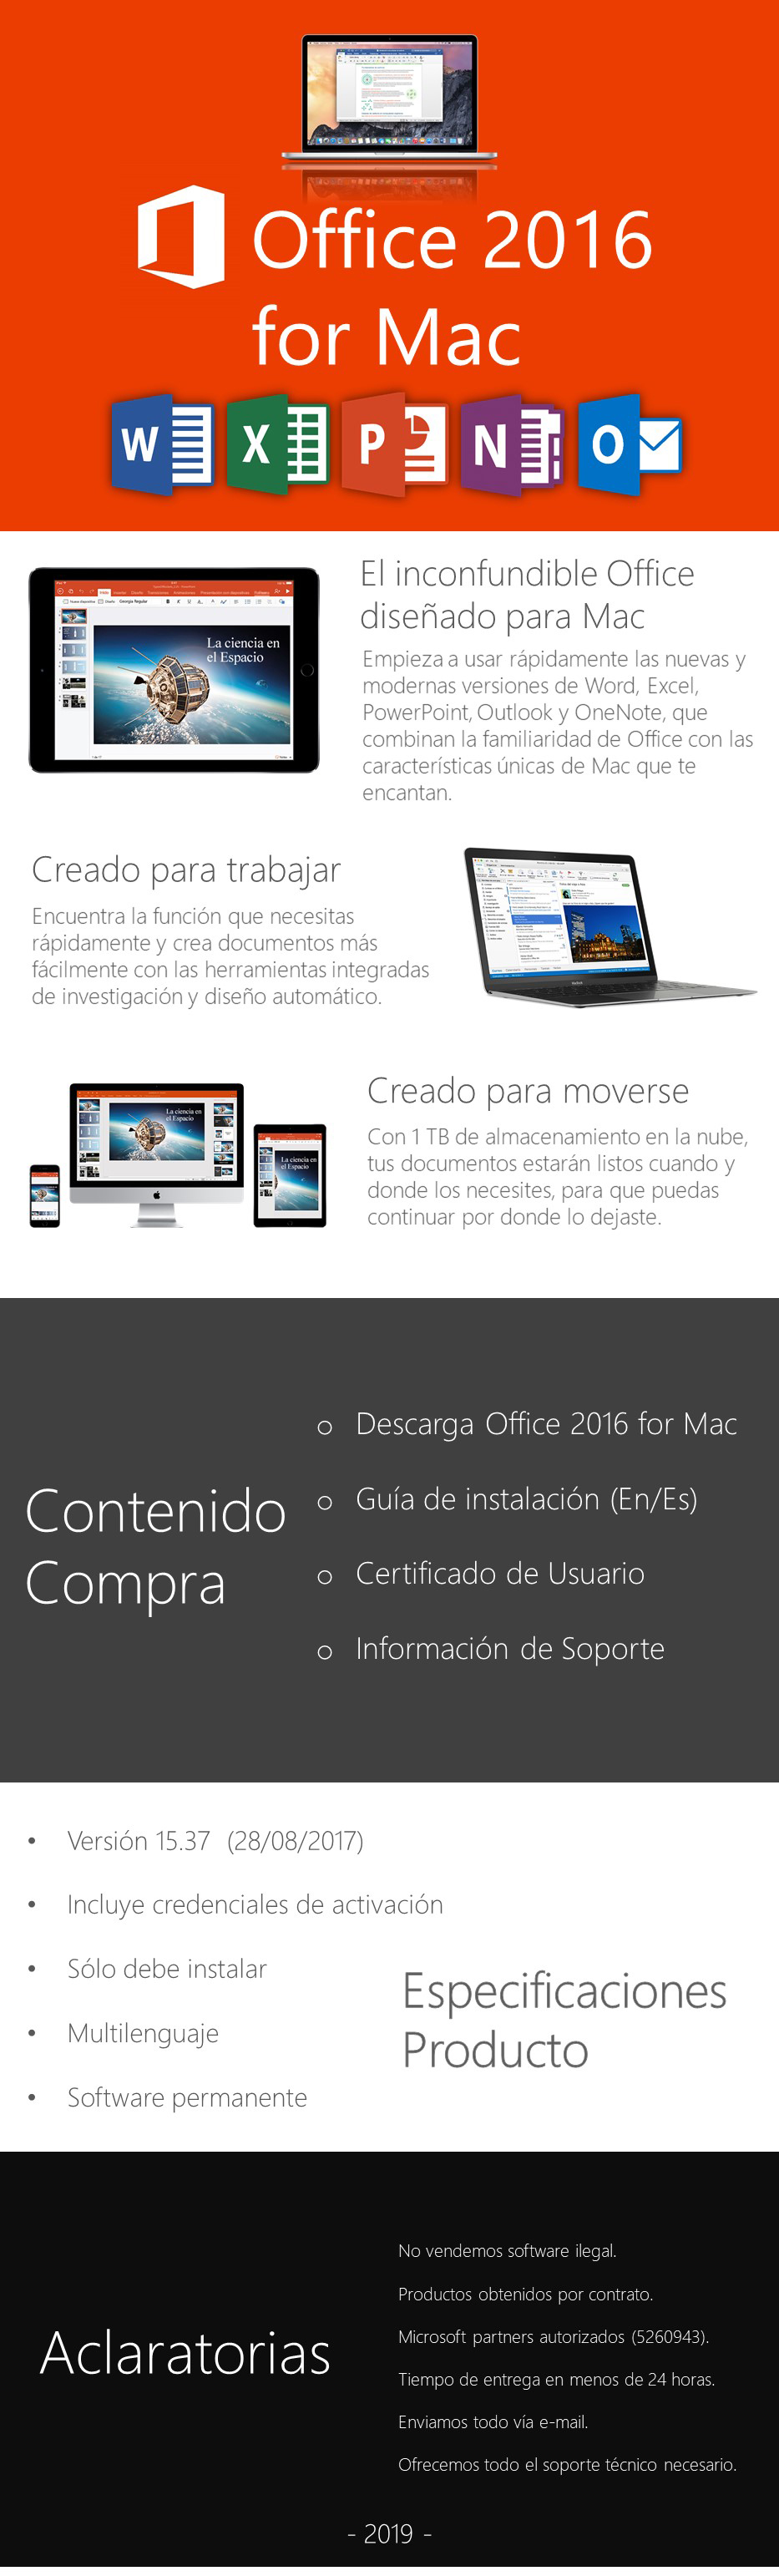 plantilla-licencias-ml-office2016-STANDARD-MAC-VZLA-TIENDA.jpg